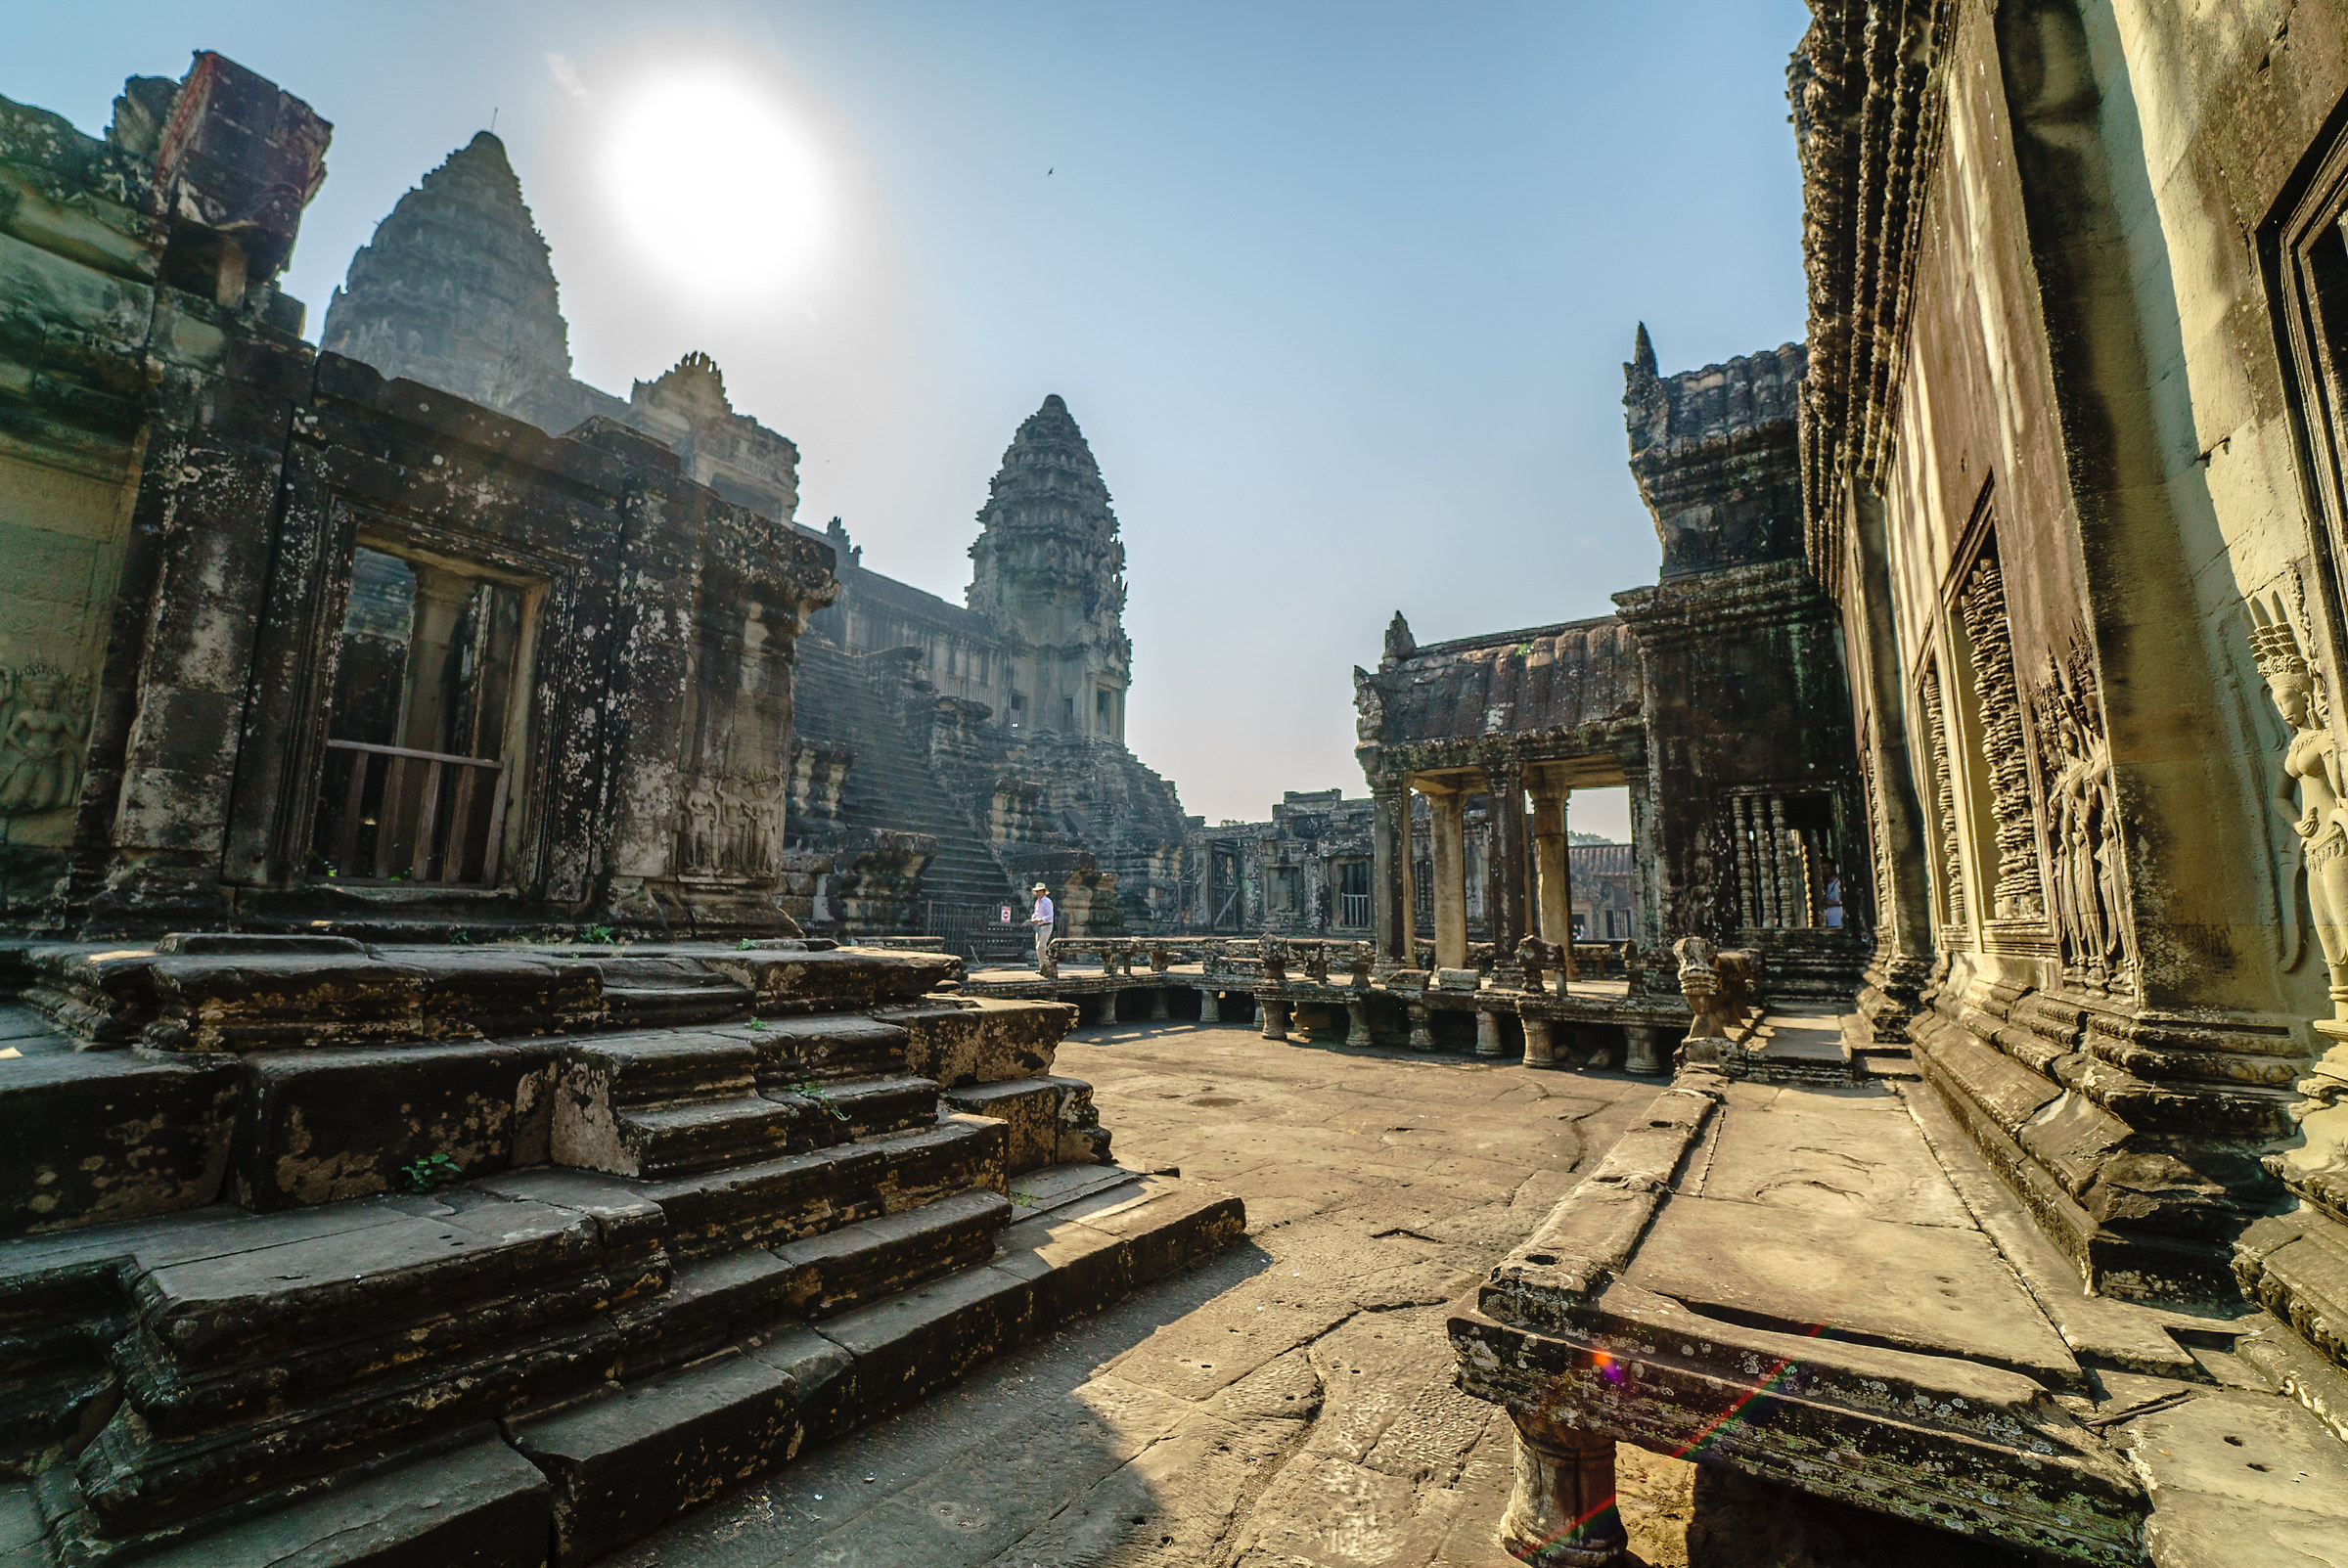 Inside the Angkor Wat...